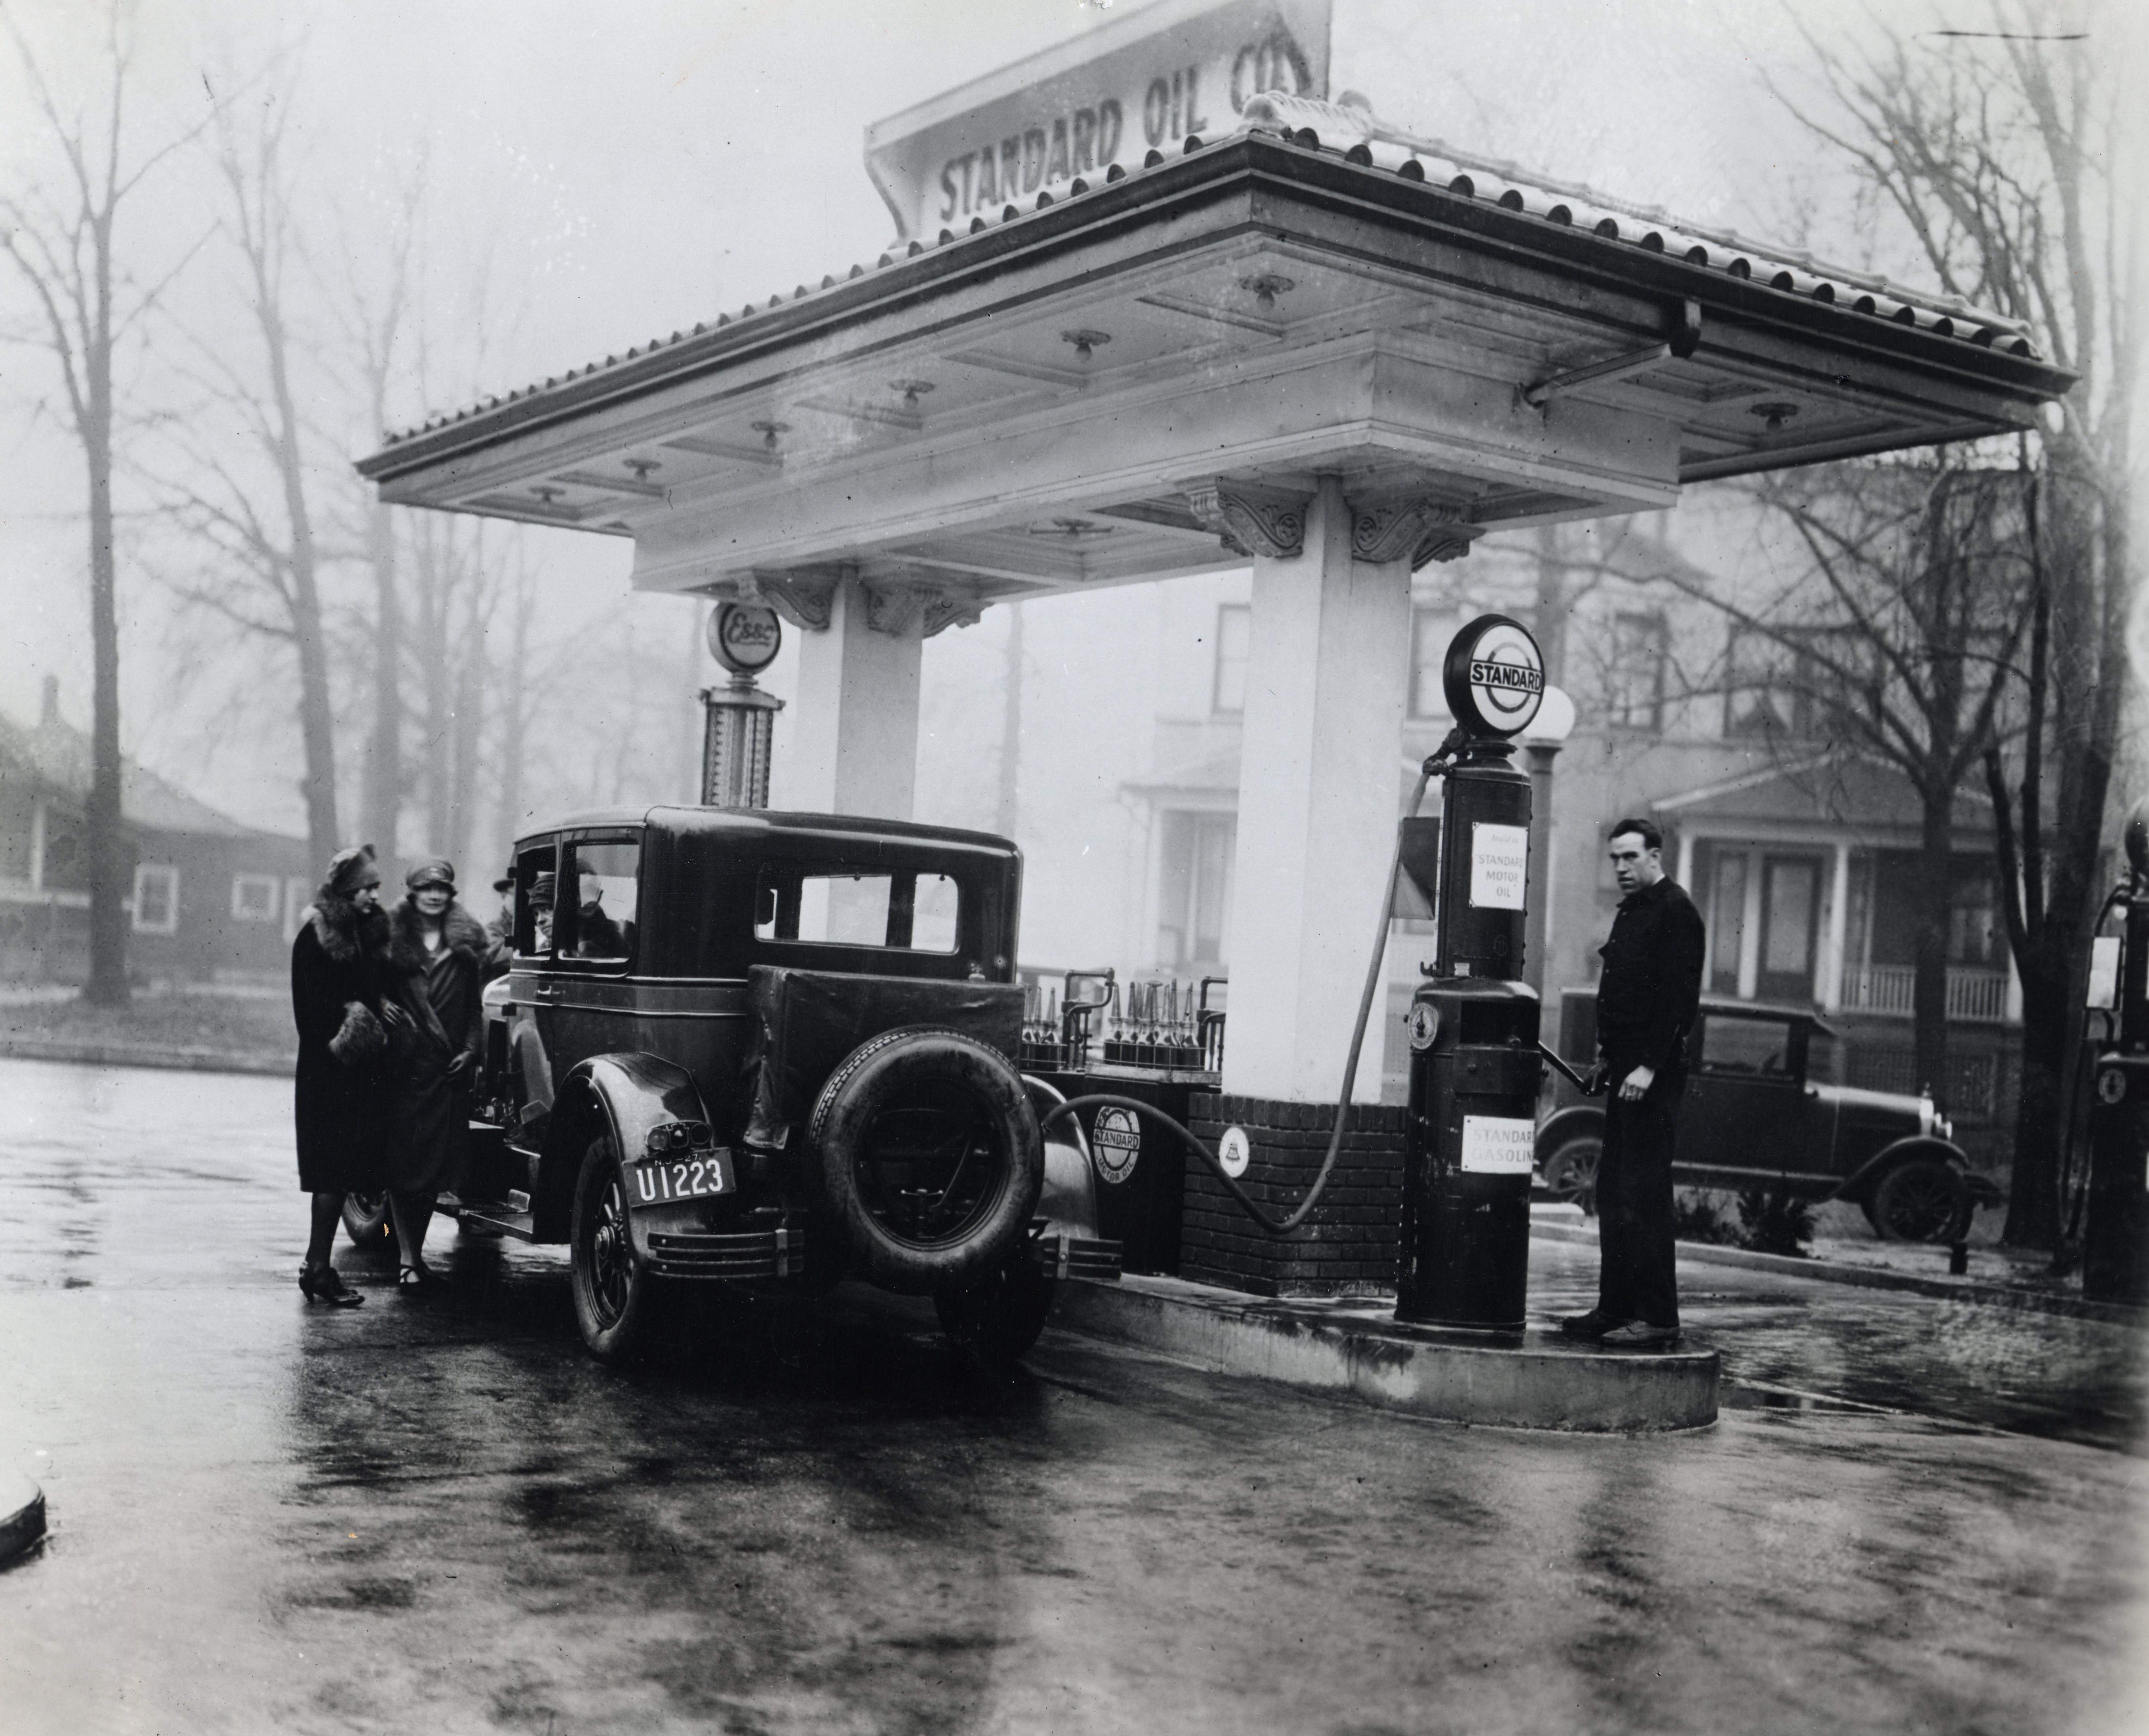 From hand pumps to cell phones:  A history of the American gas station